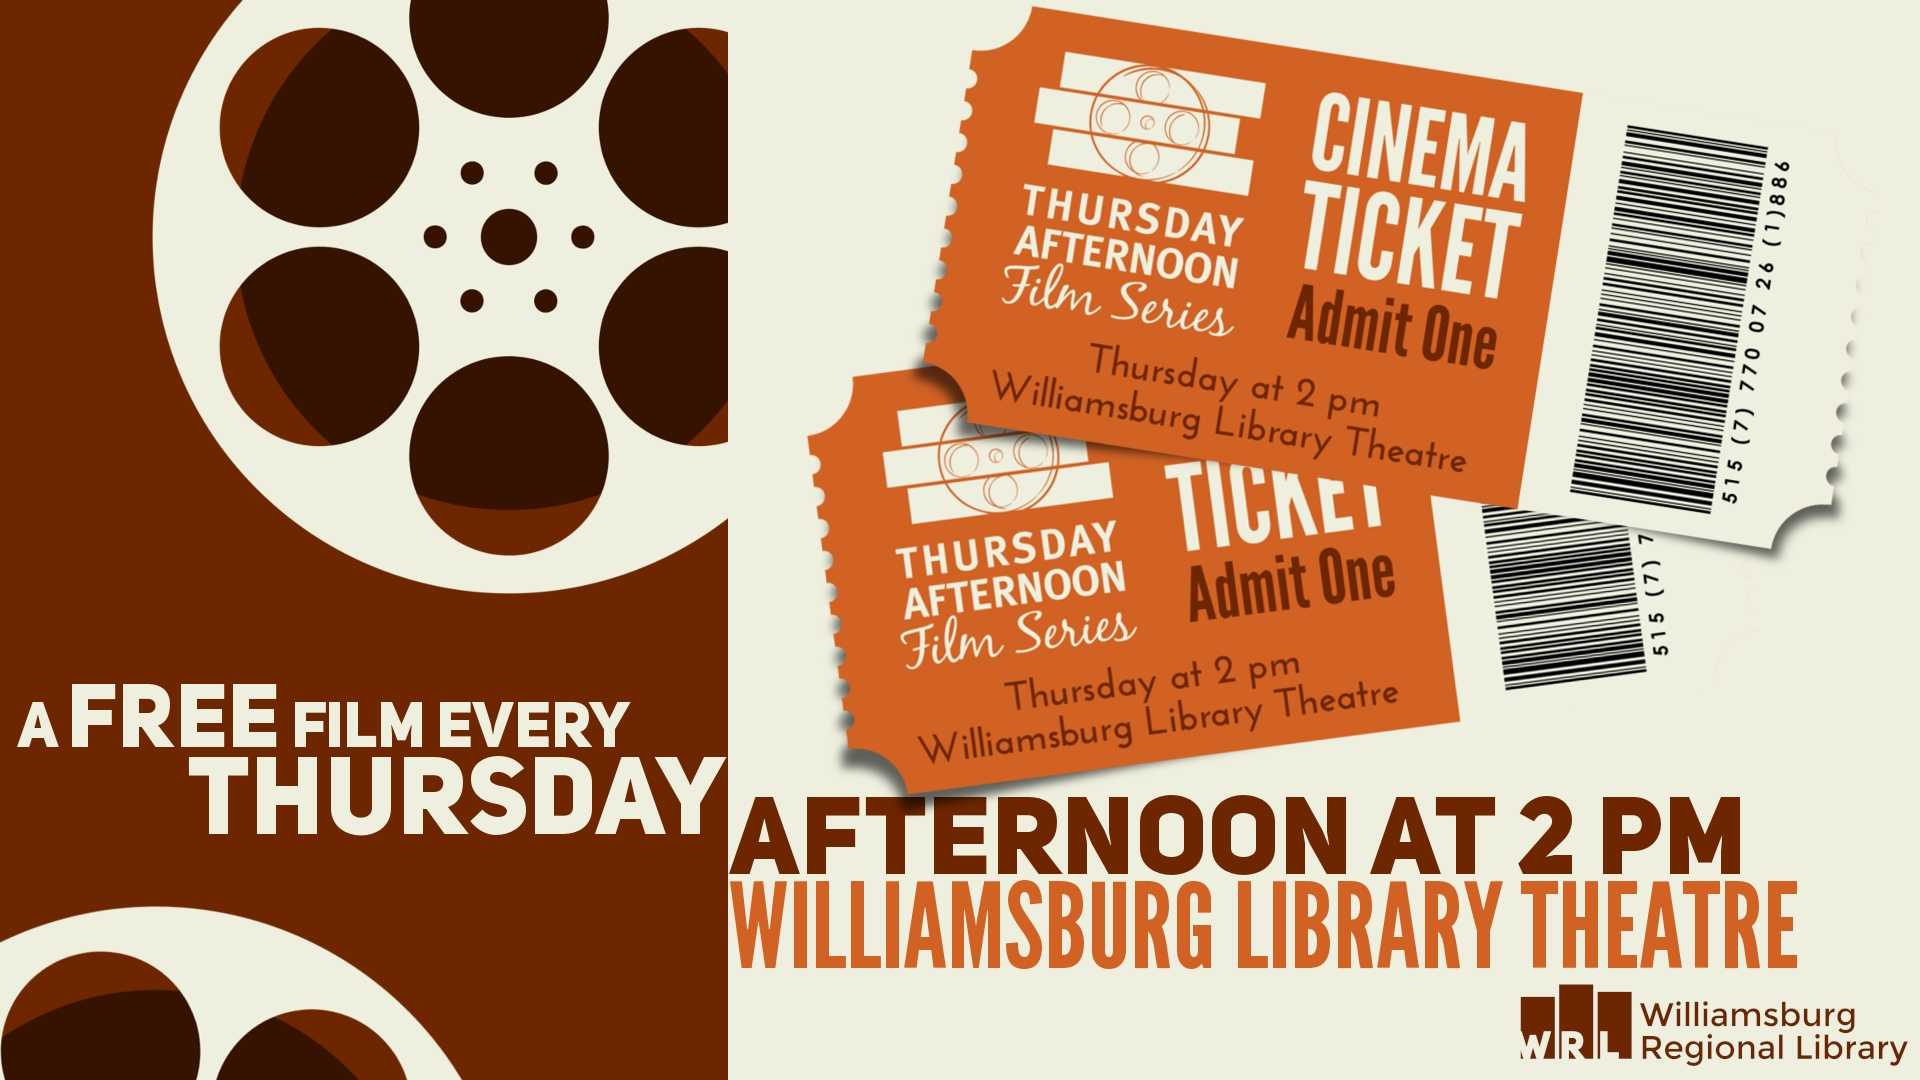 a free film every Thursday afternoon at 2PM Williamsburg Library Theatre